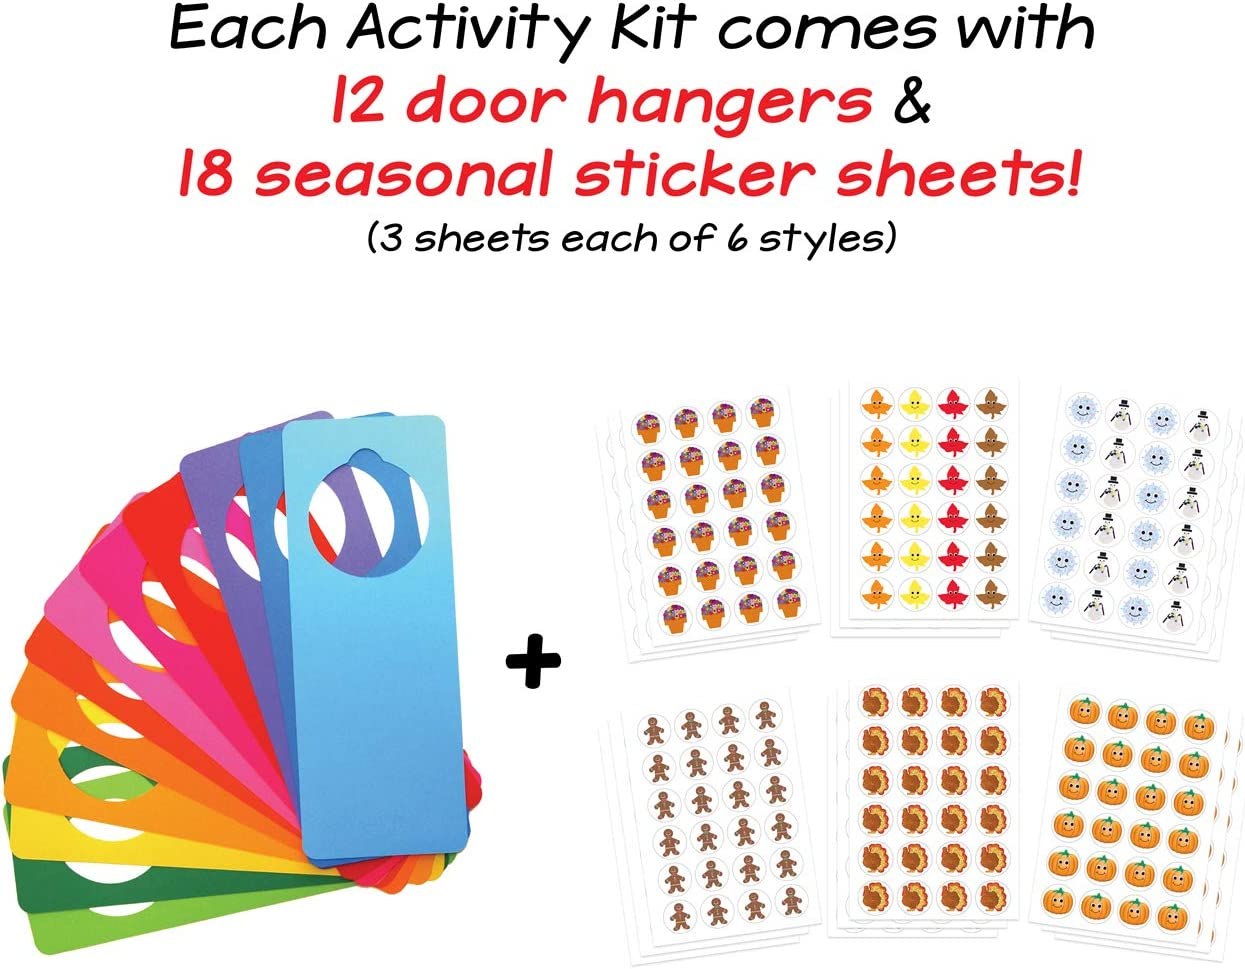 Hygloss Products Smiley Sticker Activity for Kids Make Art Younger Preschool Kit with Stickers-12 Door Hangers with 18 Sheets